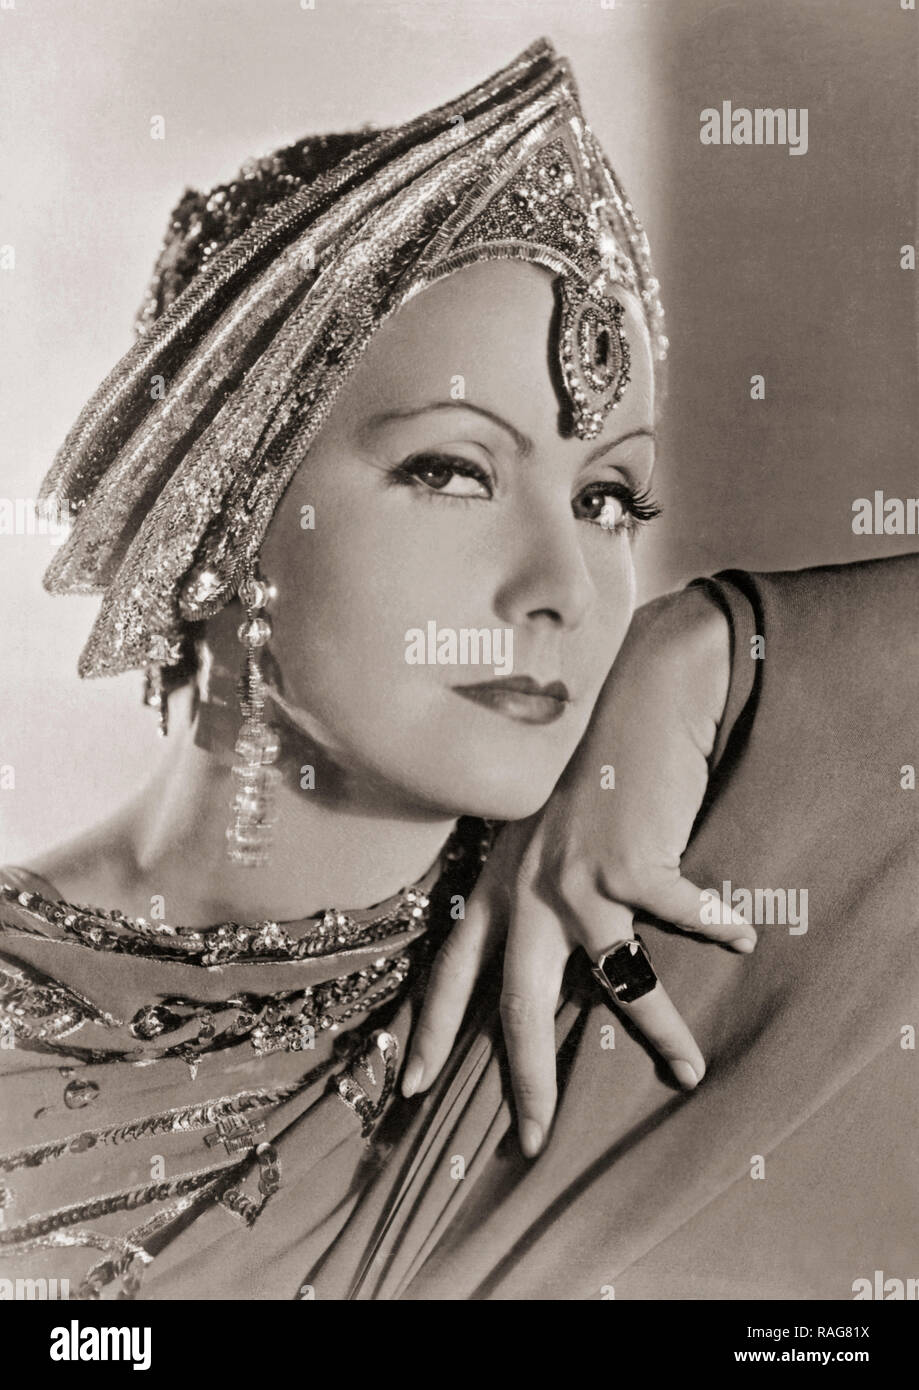 Greta Garbo, 1905-1990.  Swedish born actress who later took American citizenship.  This photograph shows her in costume for the 1931 Metro-Goldwyn-Mayer production of Mata Hari. - Stock Image